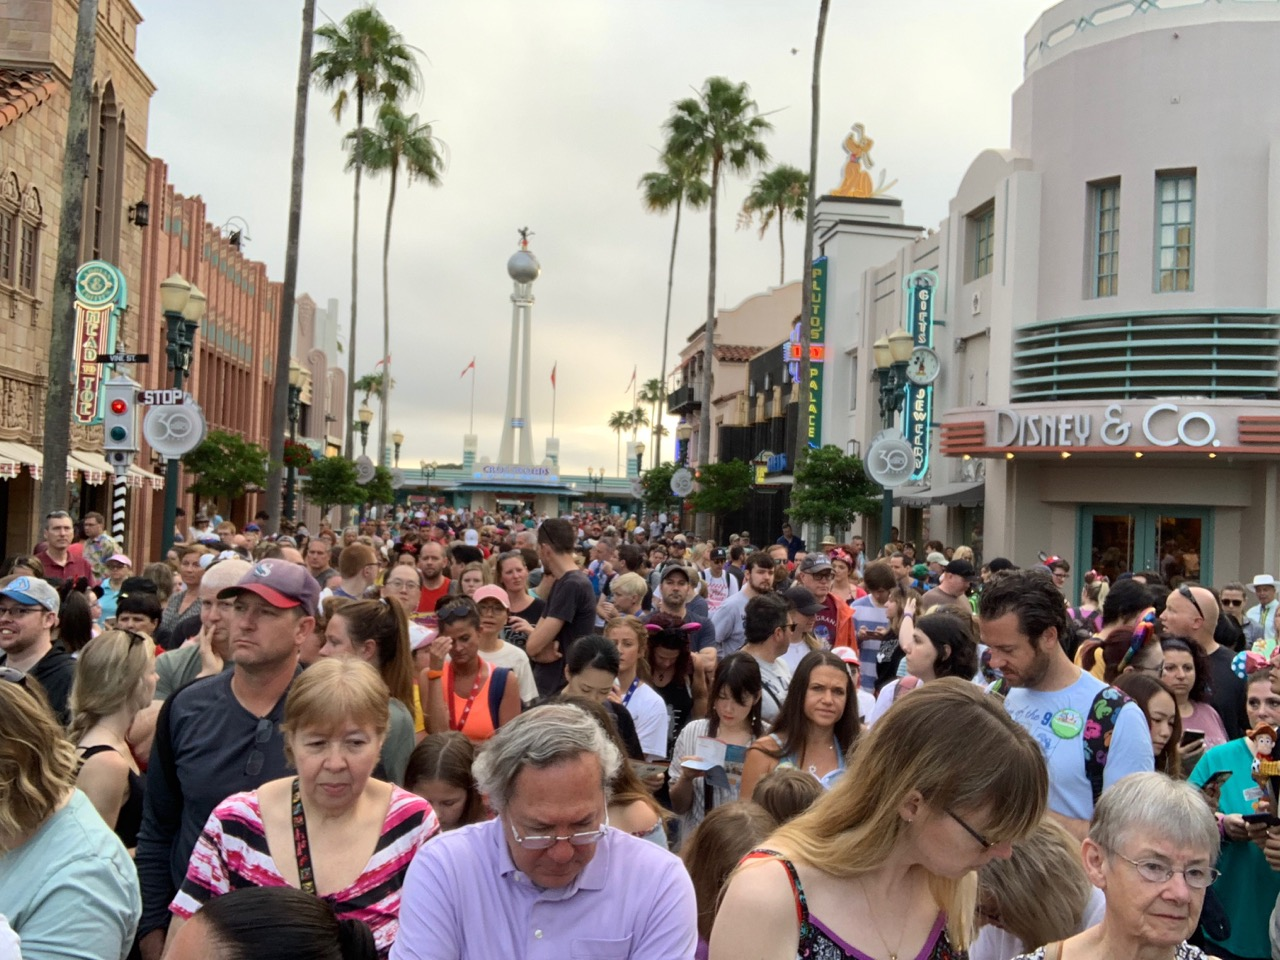 disney world trip report early summer 2019 day two 10 rope drop.jpeg